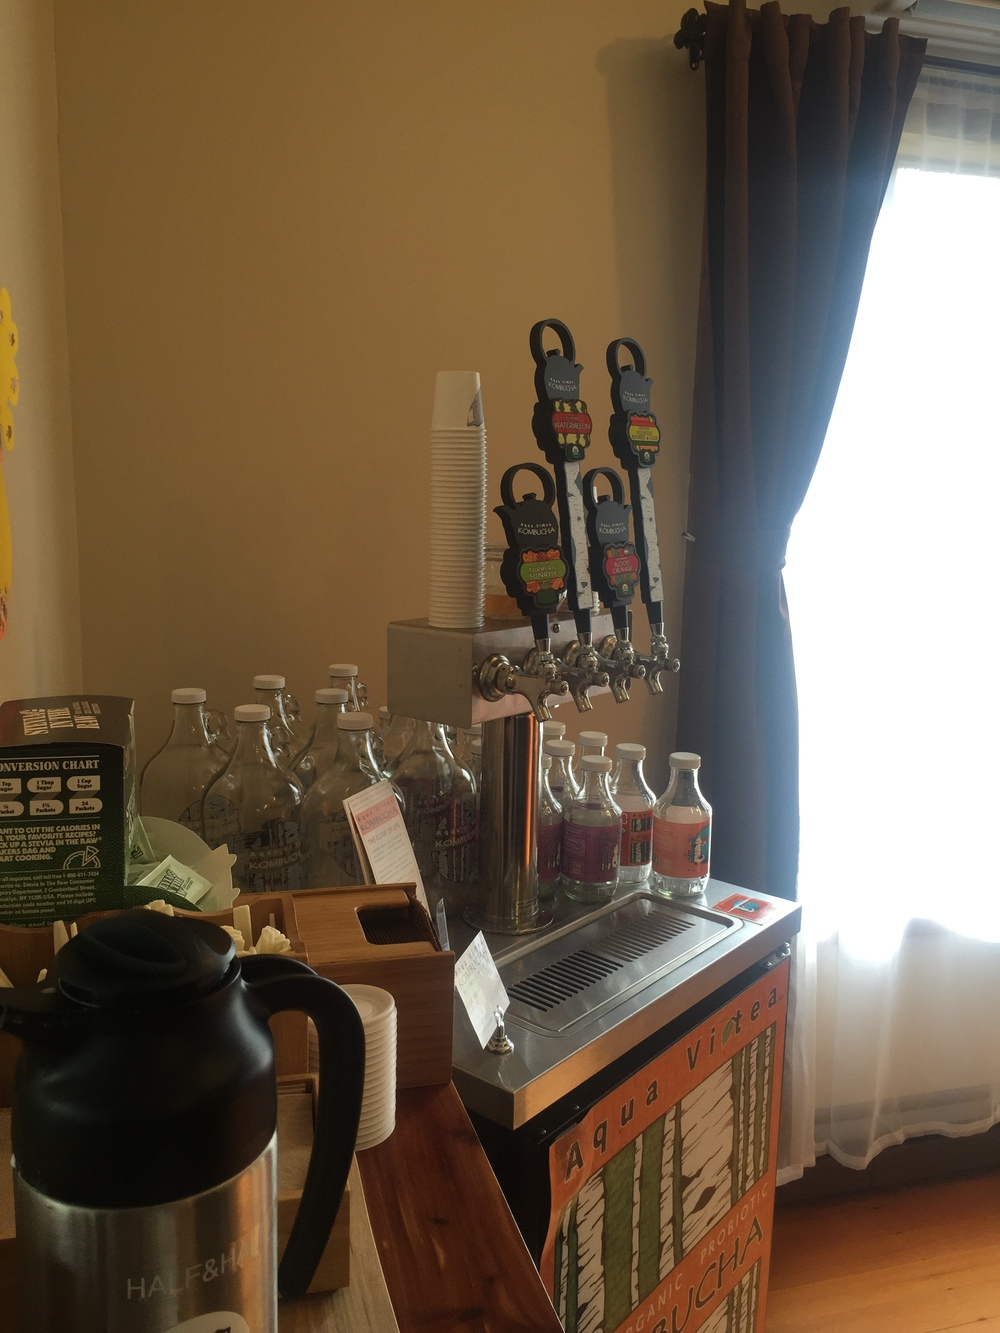 The Kombucha taps (note the growlers behind).